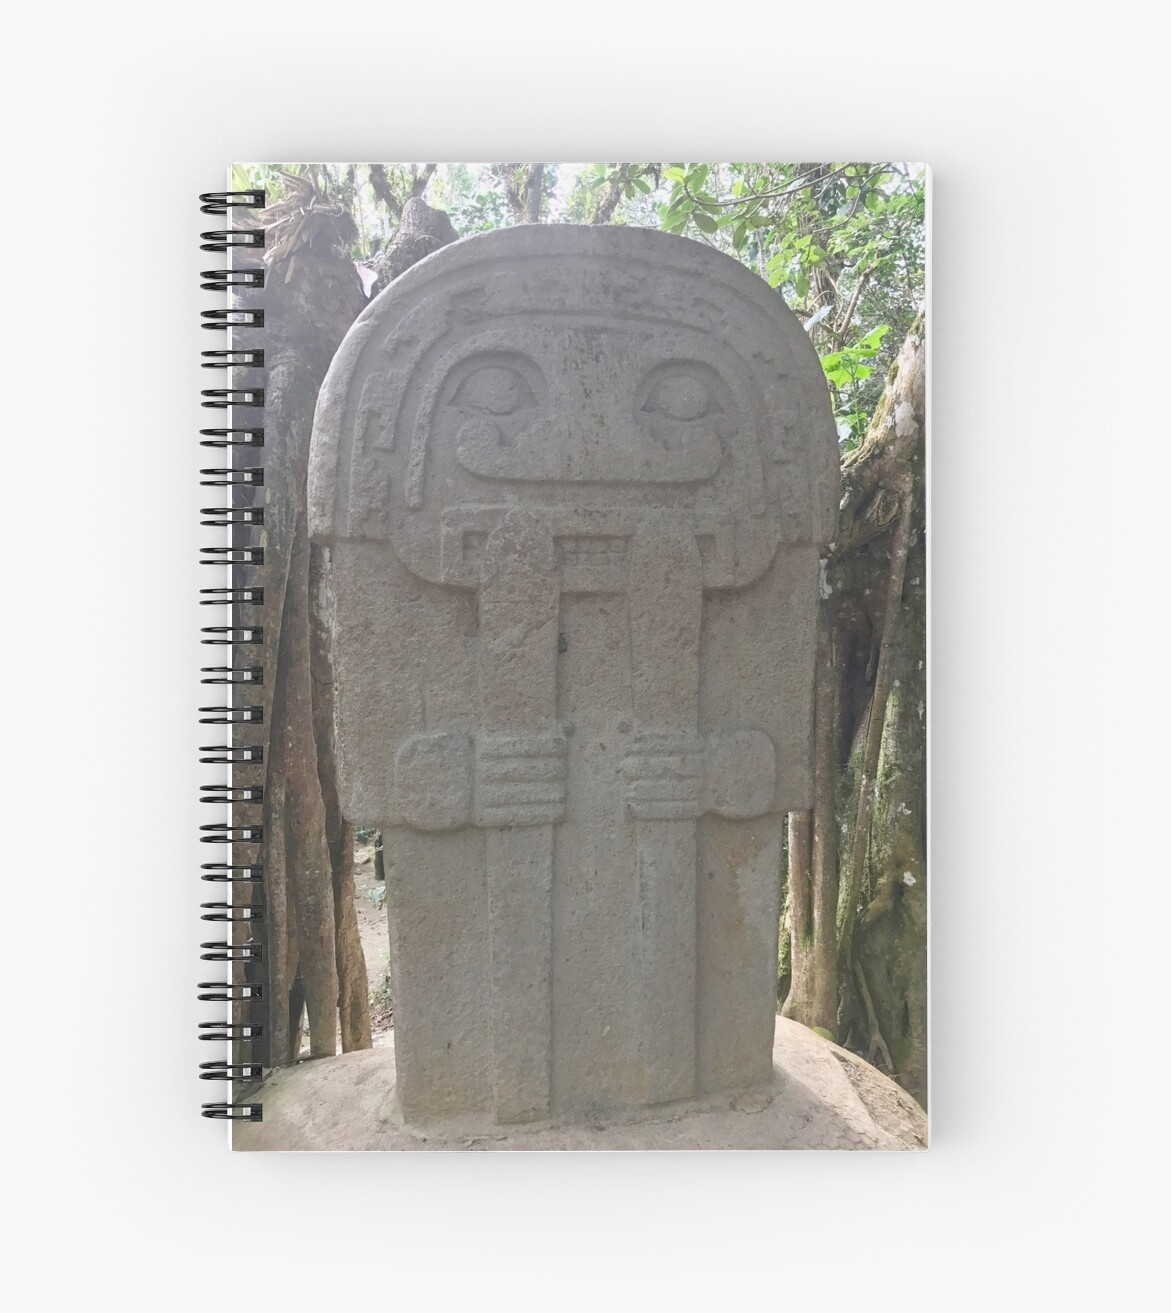 Colombia - San Agustin - stone god with poles in hands by renprovo